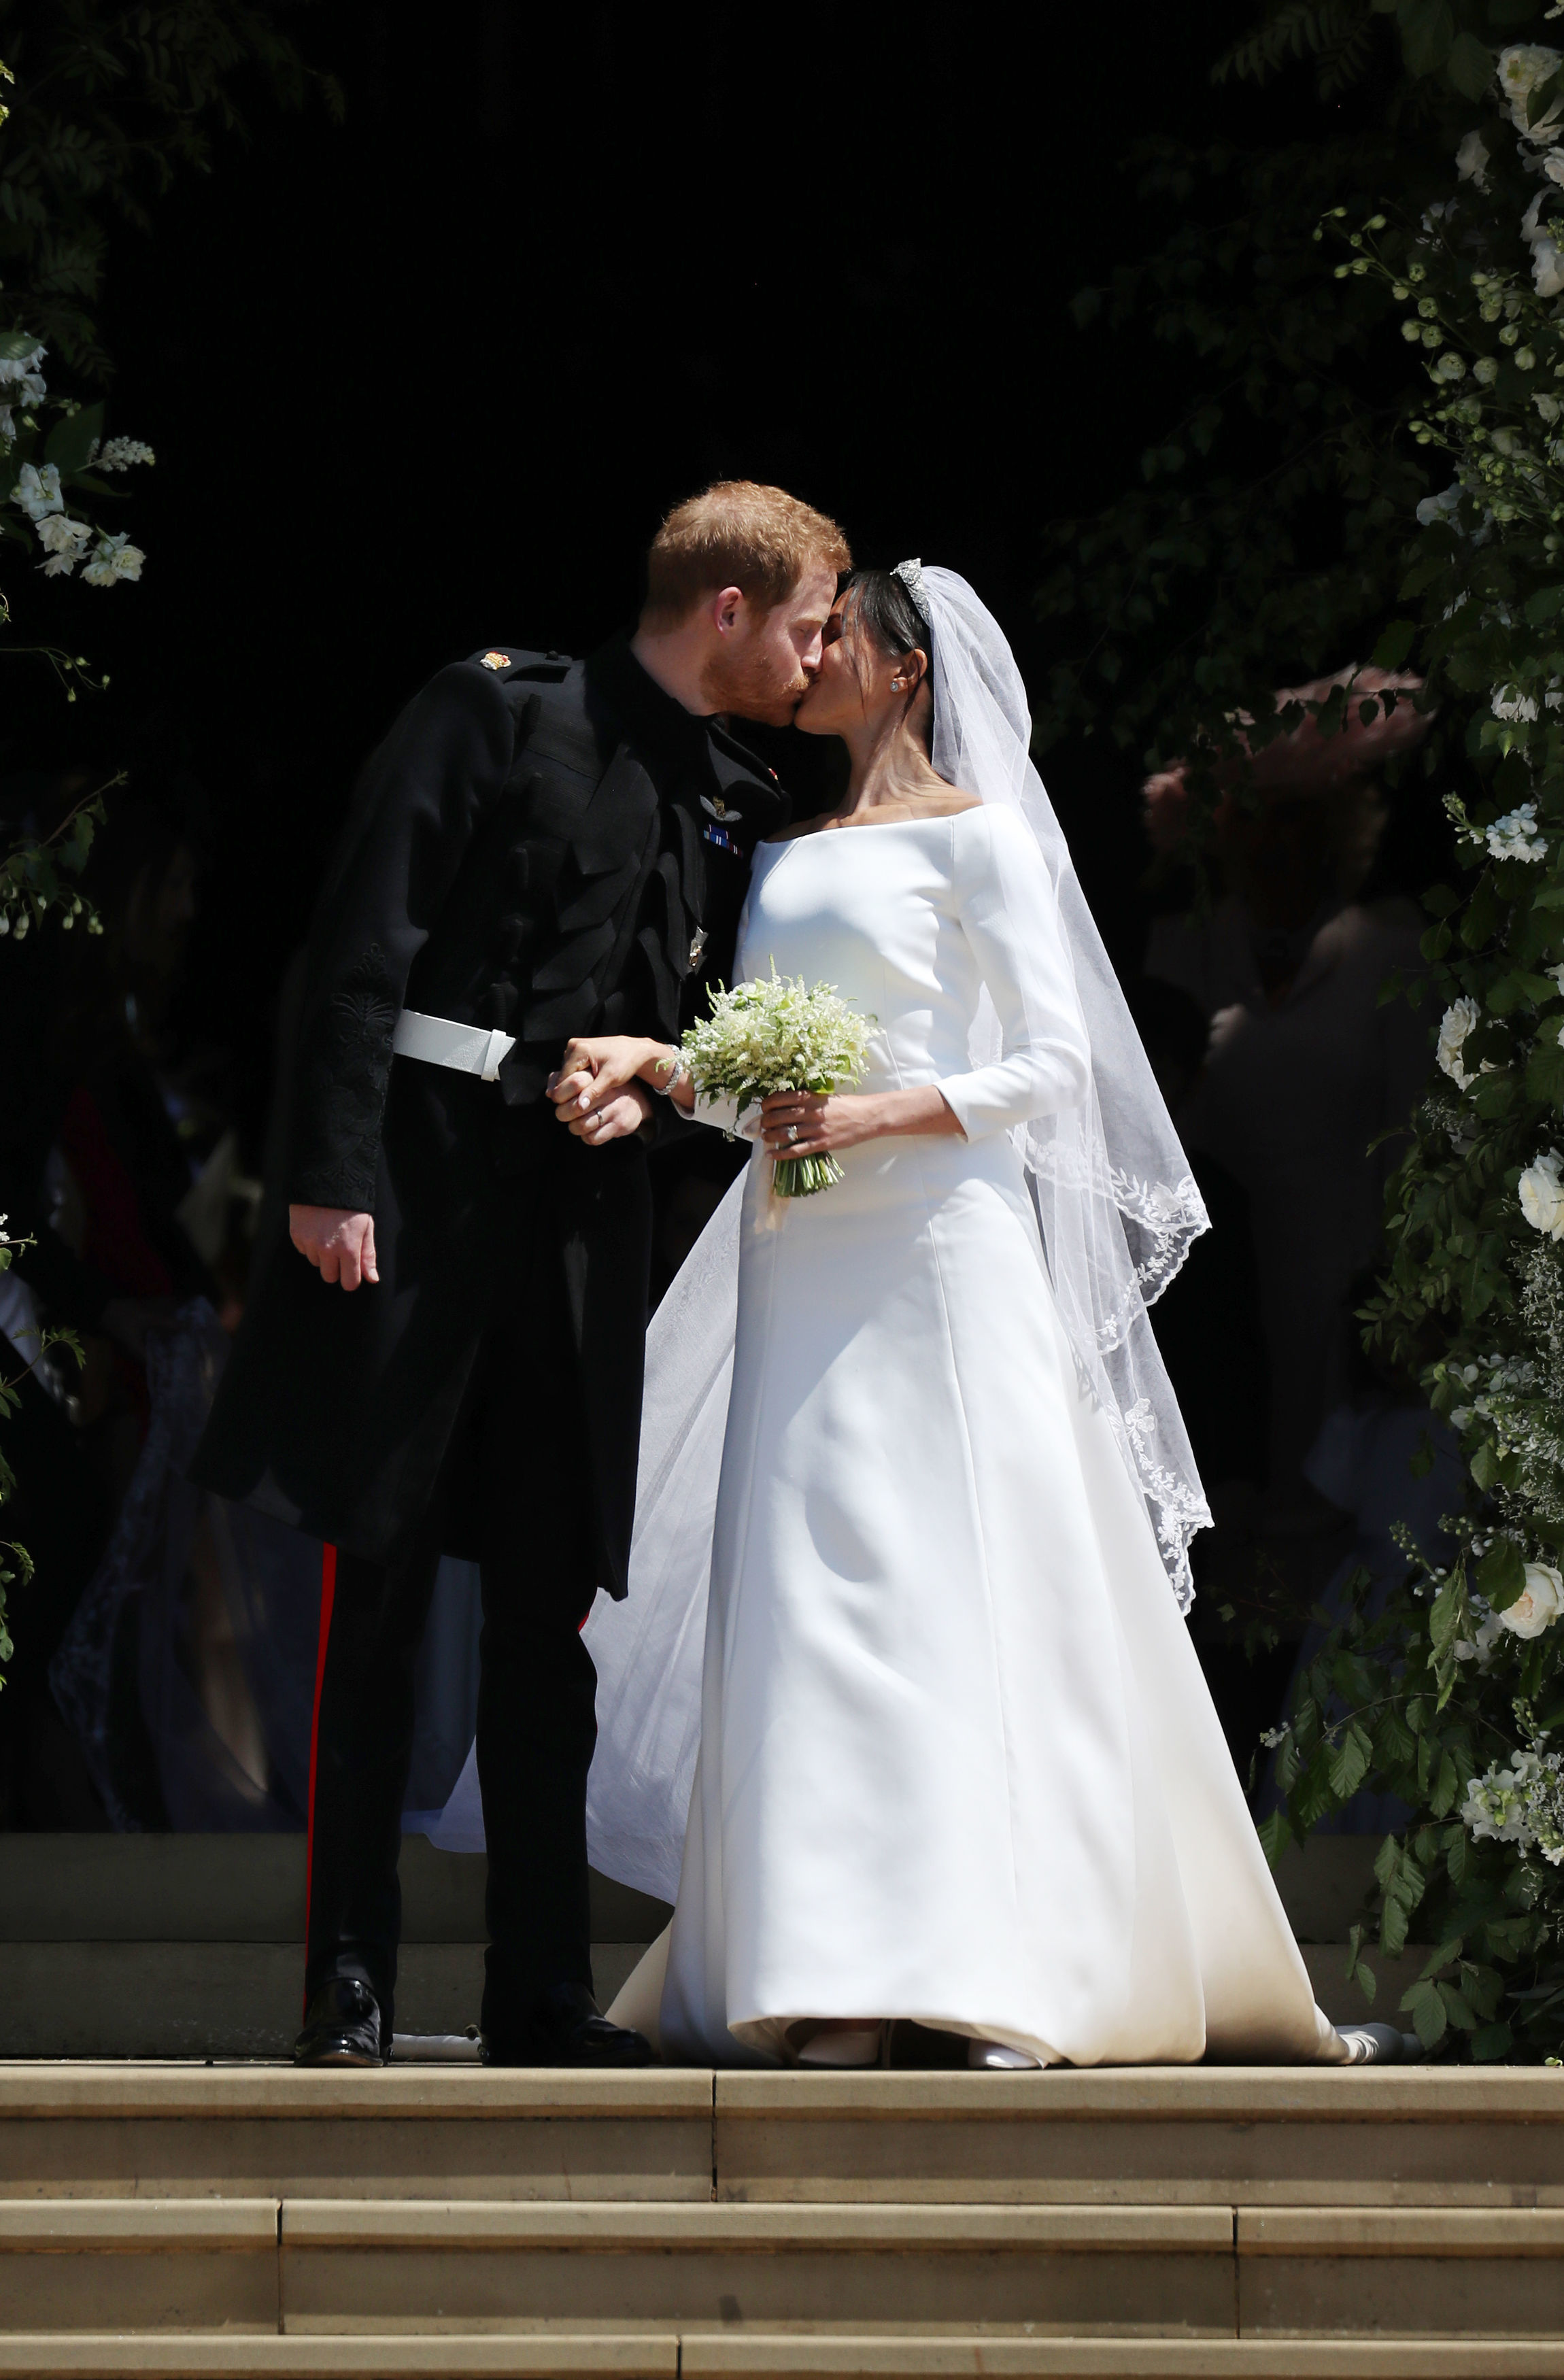 Prince Harry, Duke of Sussex and The Duchess of Sussex kiss as they leave St George's Chapel, Windsor Castle after their wedding ceremony on May 19, 2018 in Windsor, England.